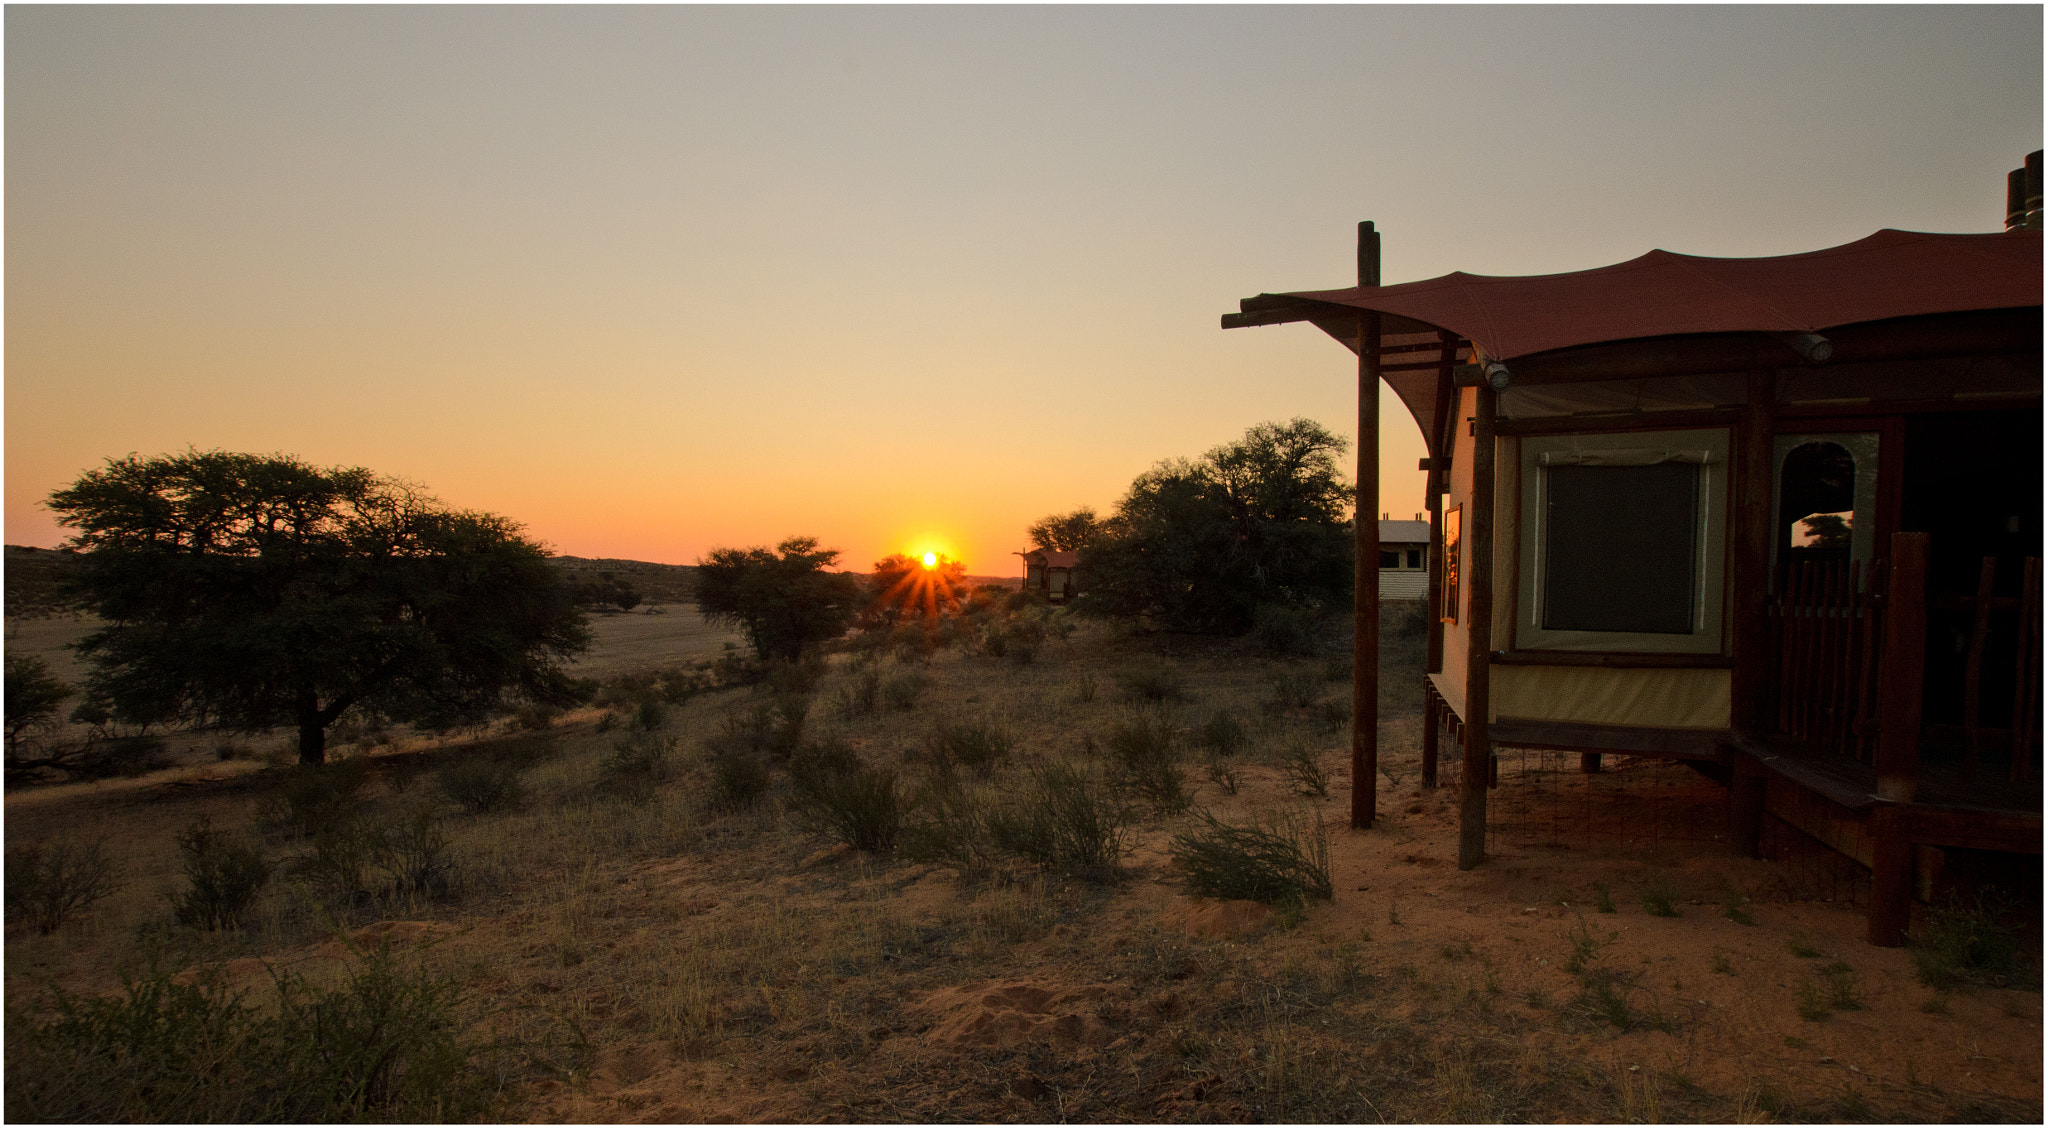 Photograph Kalahari Tented Camp Sunset by Christopher van Zyl on 500px